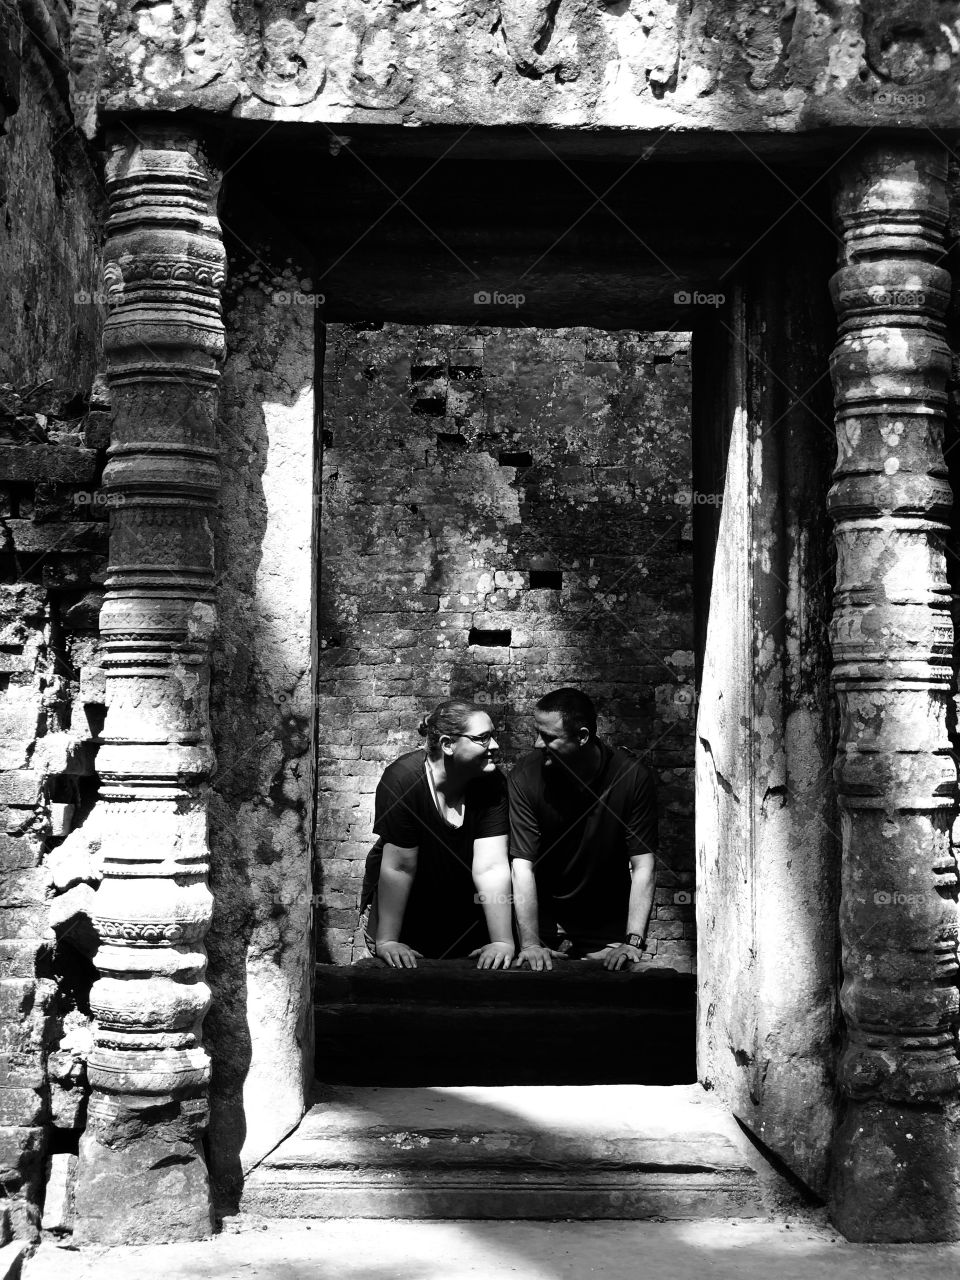 Black and White Photo, Cambodia Column Ruins